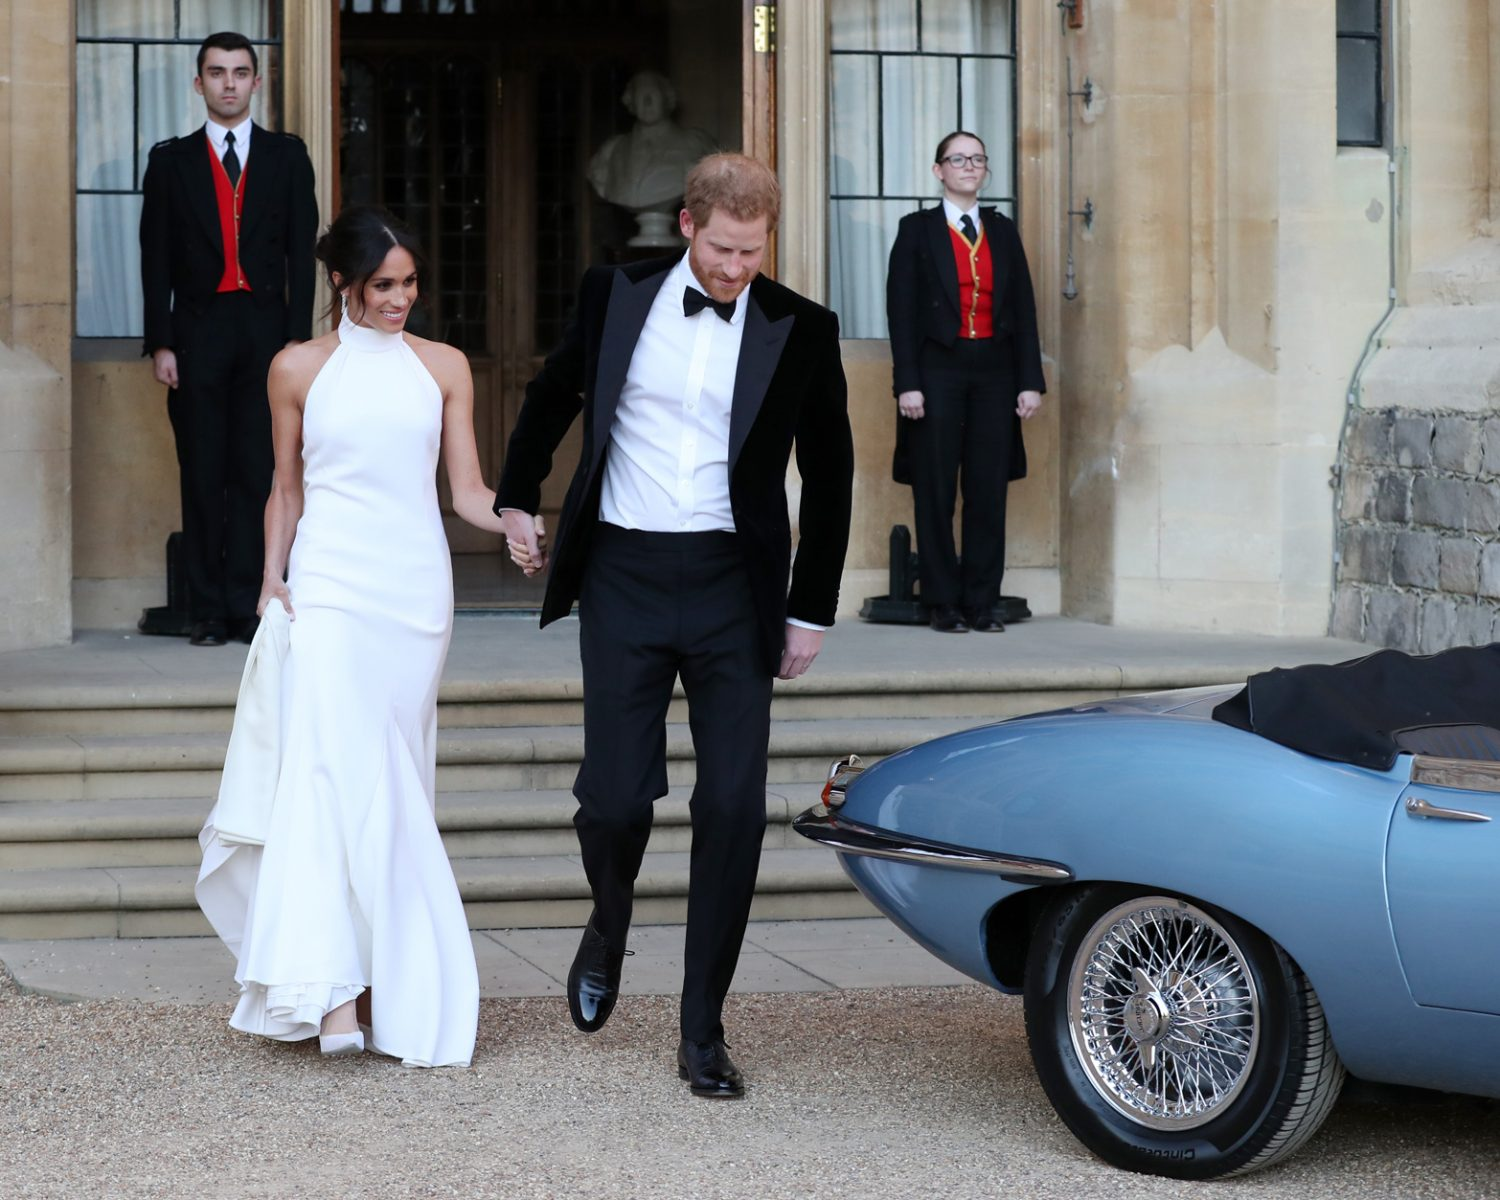 Windsor United Kingdom May 19 Ss Of Sus And Prince Harry Duke Leave Castle After Their Wedding To Attend An Evening Reception